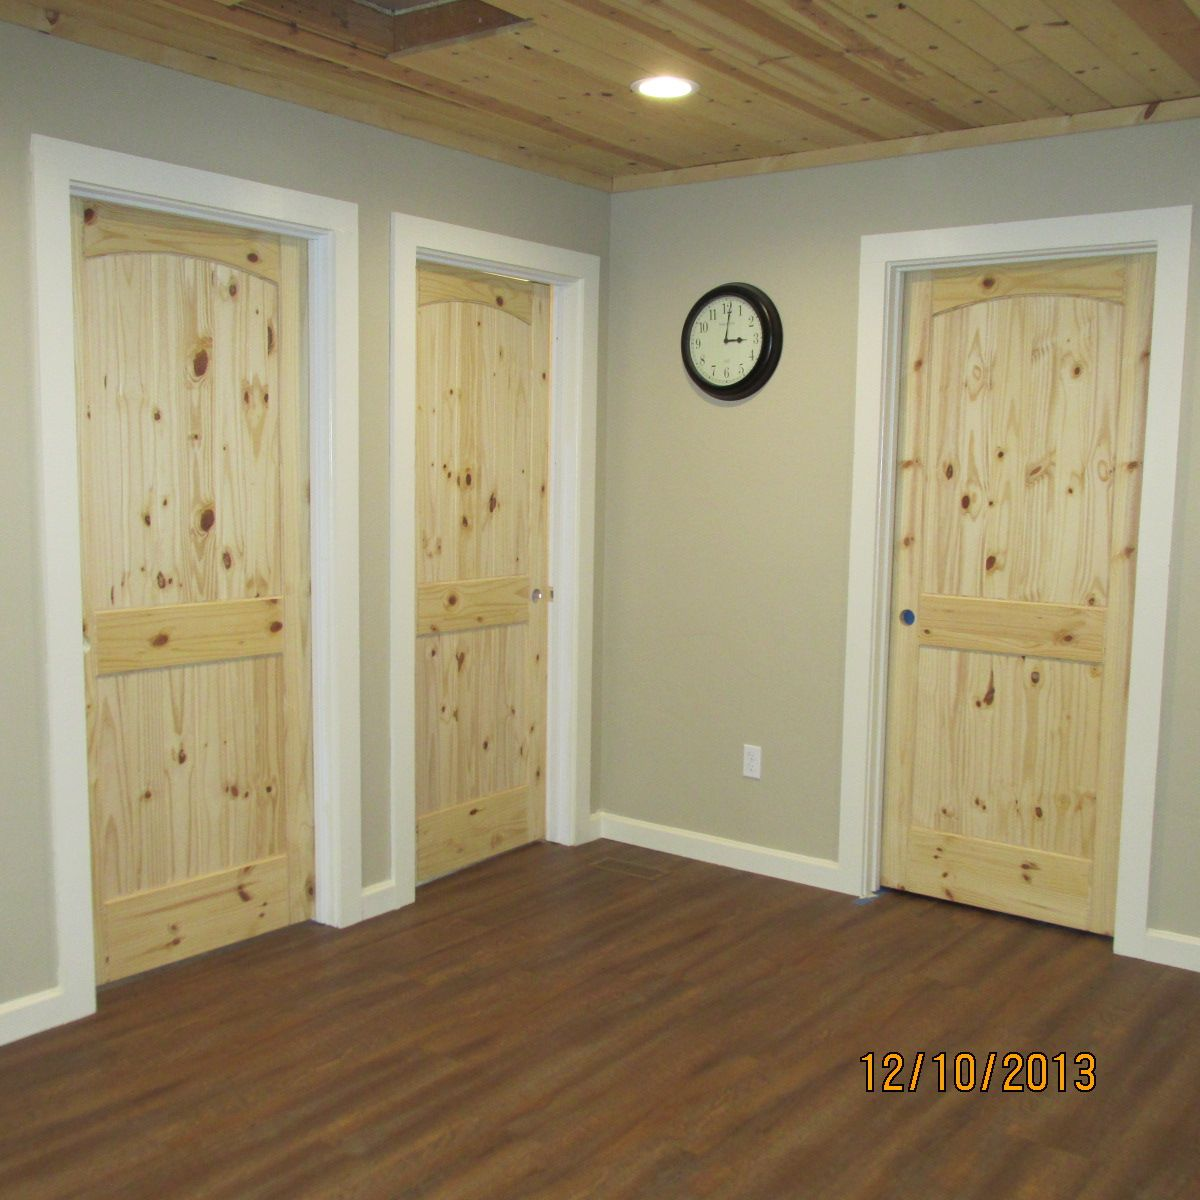 All knotty pine doors Find your perfect door at .falcondoorco.com ! & All knotty pine doors Find your perfect door at www.falcondoorco.com ...